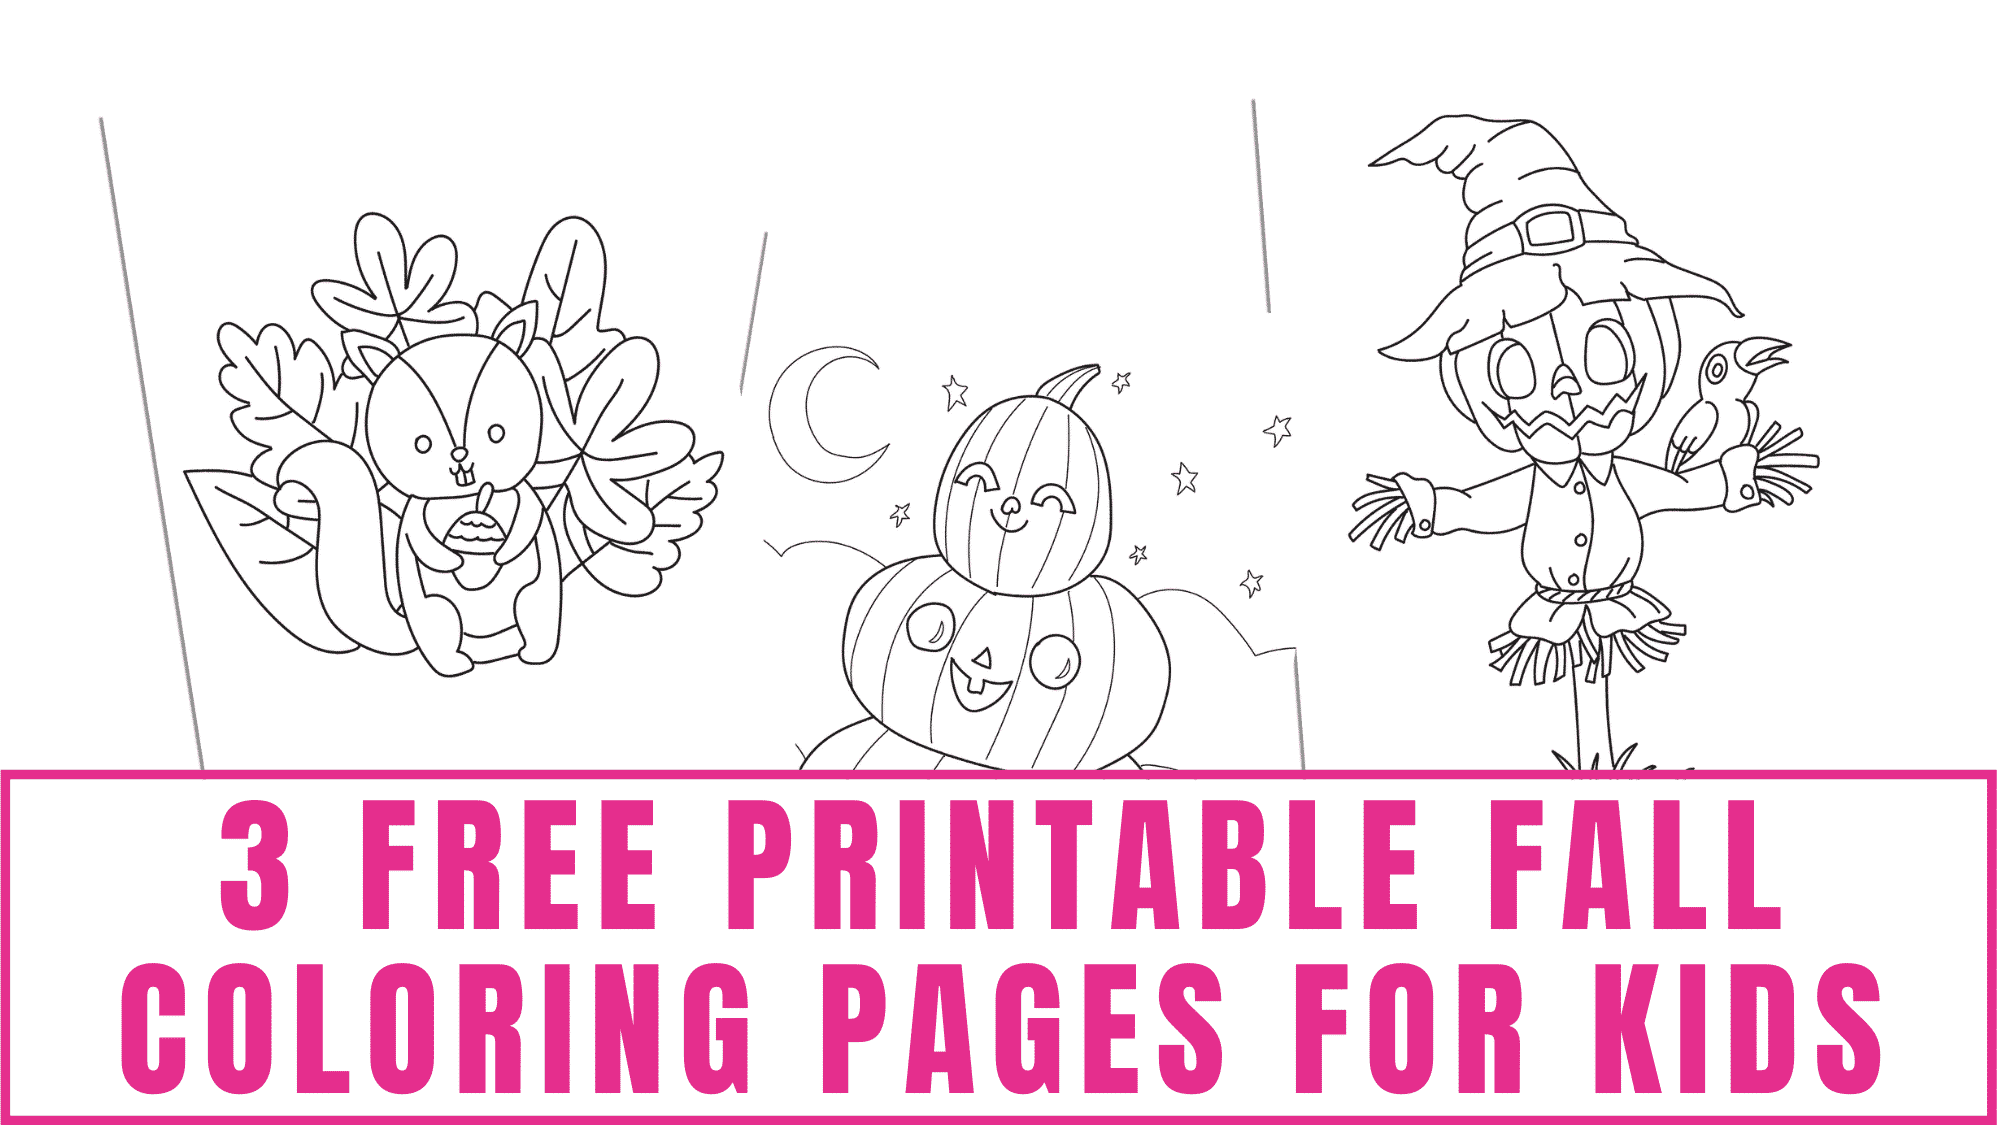 Get your kid excited about the fall season by having him/her decorate one of these free printable fall coloring pages for kids.